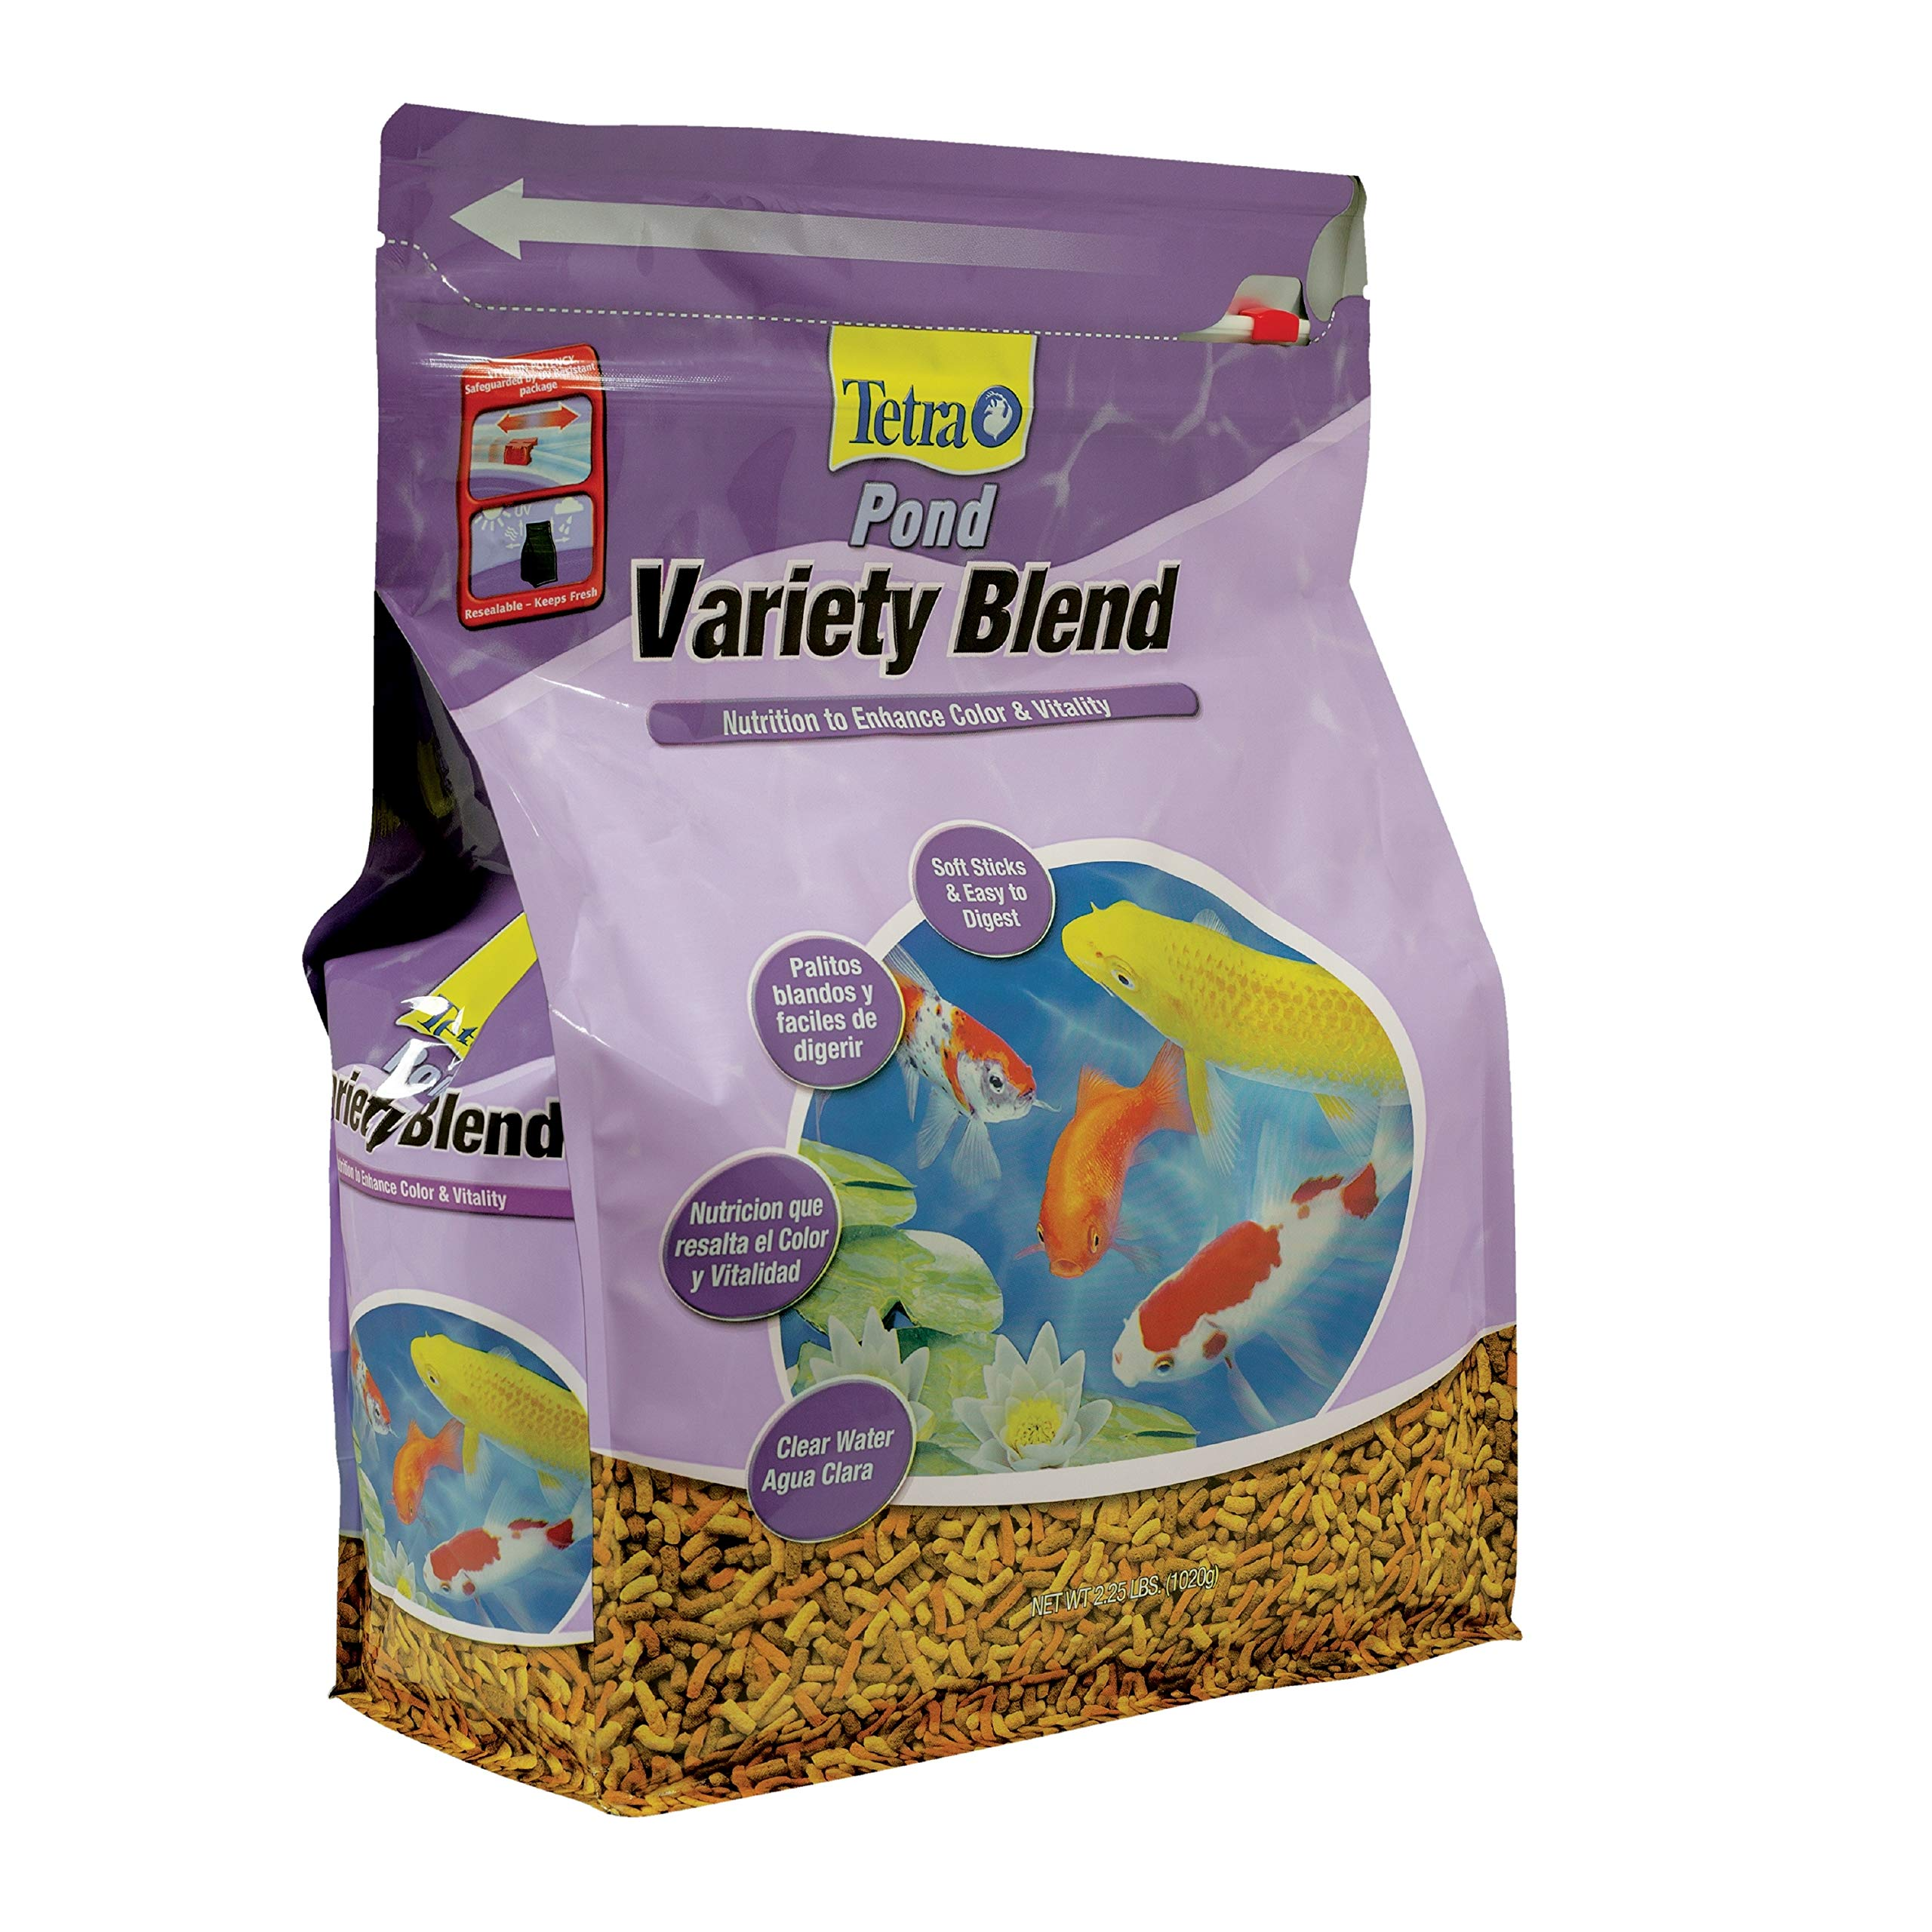 TetraPond Variety Blend, Pond Fish Food, for Goldfish and Koi by Tetra Pond